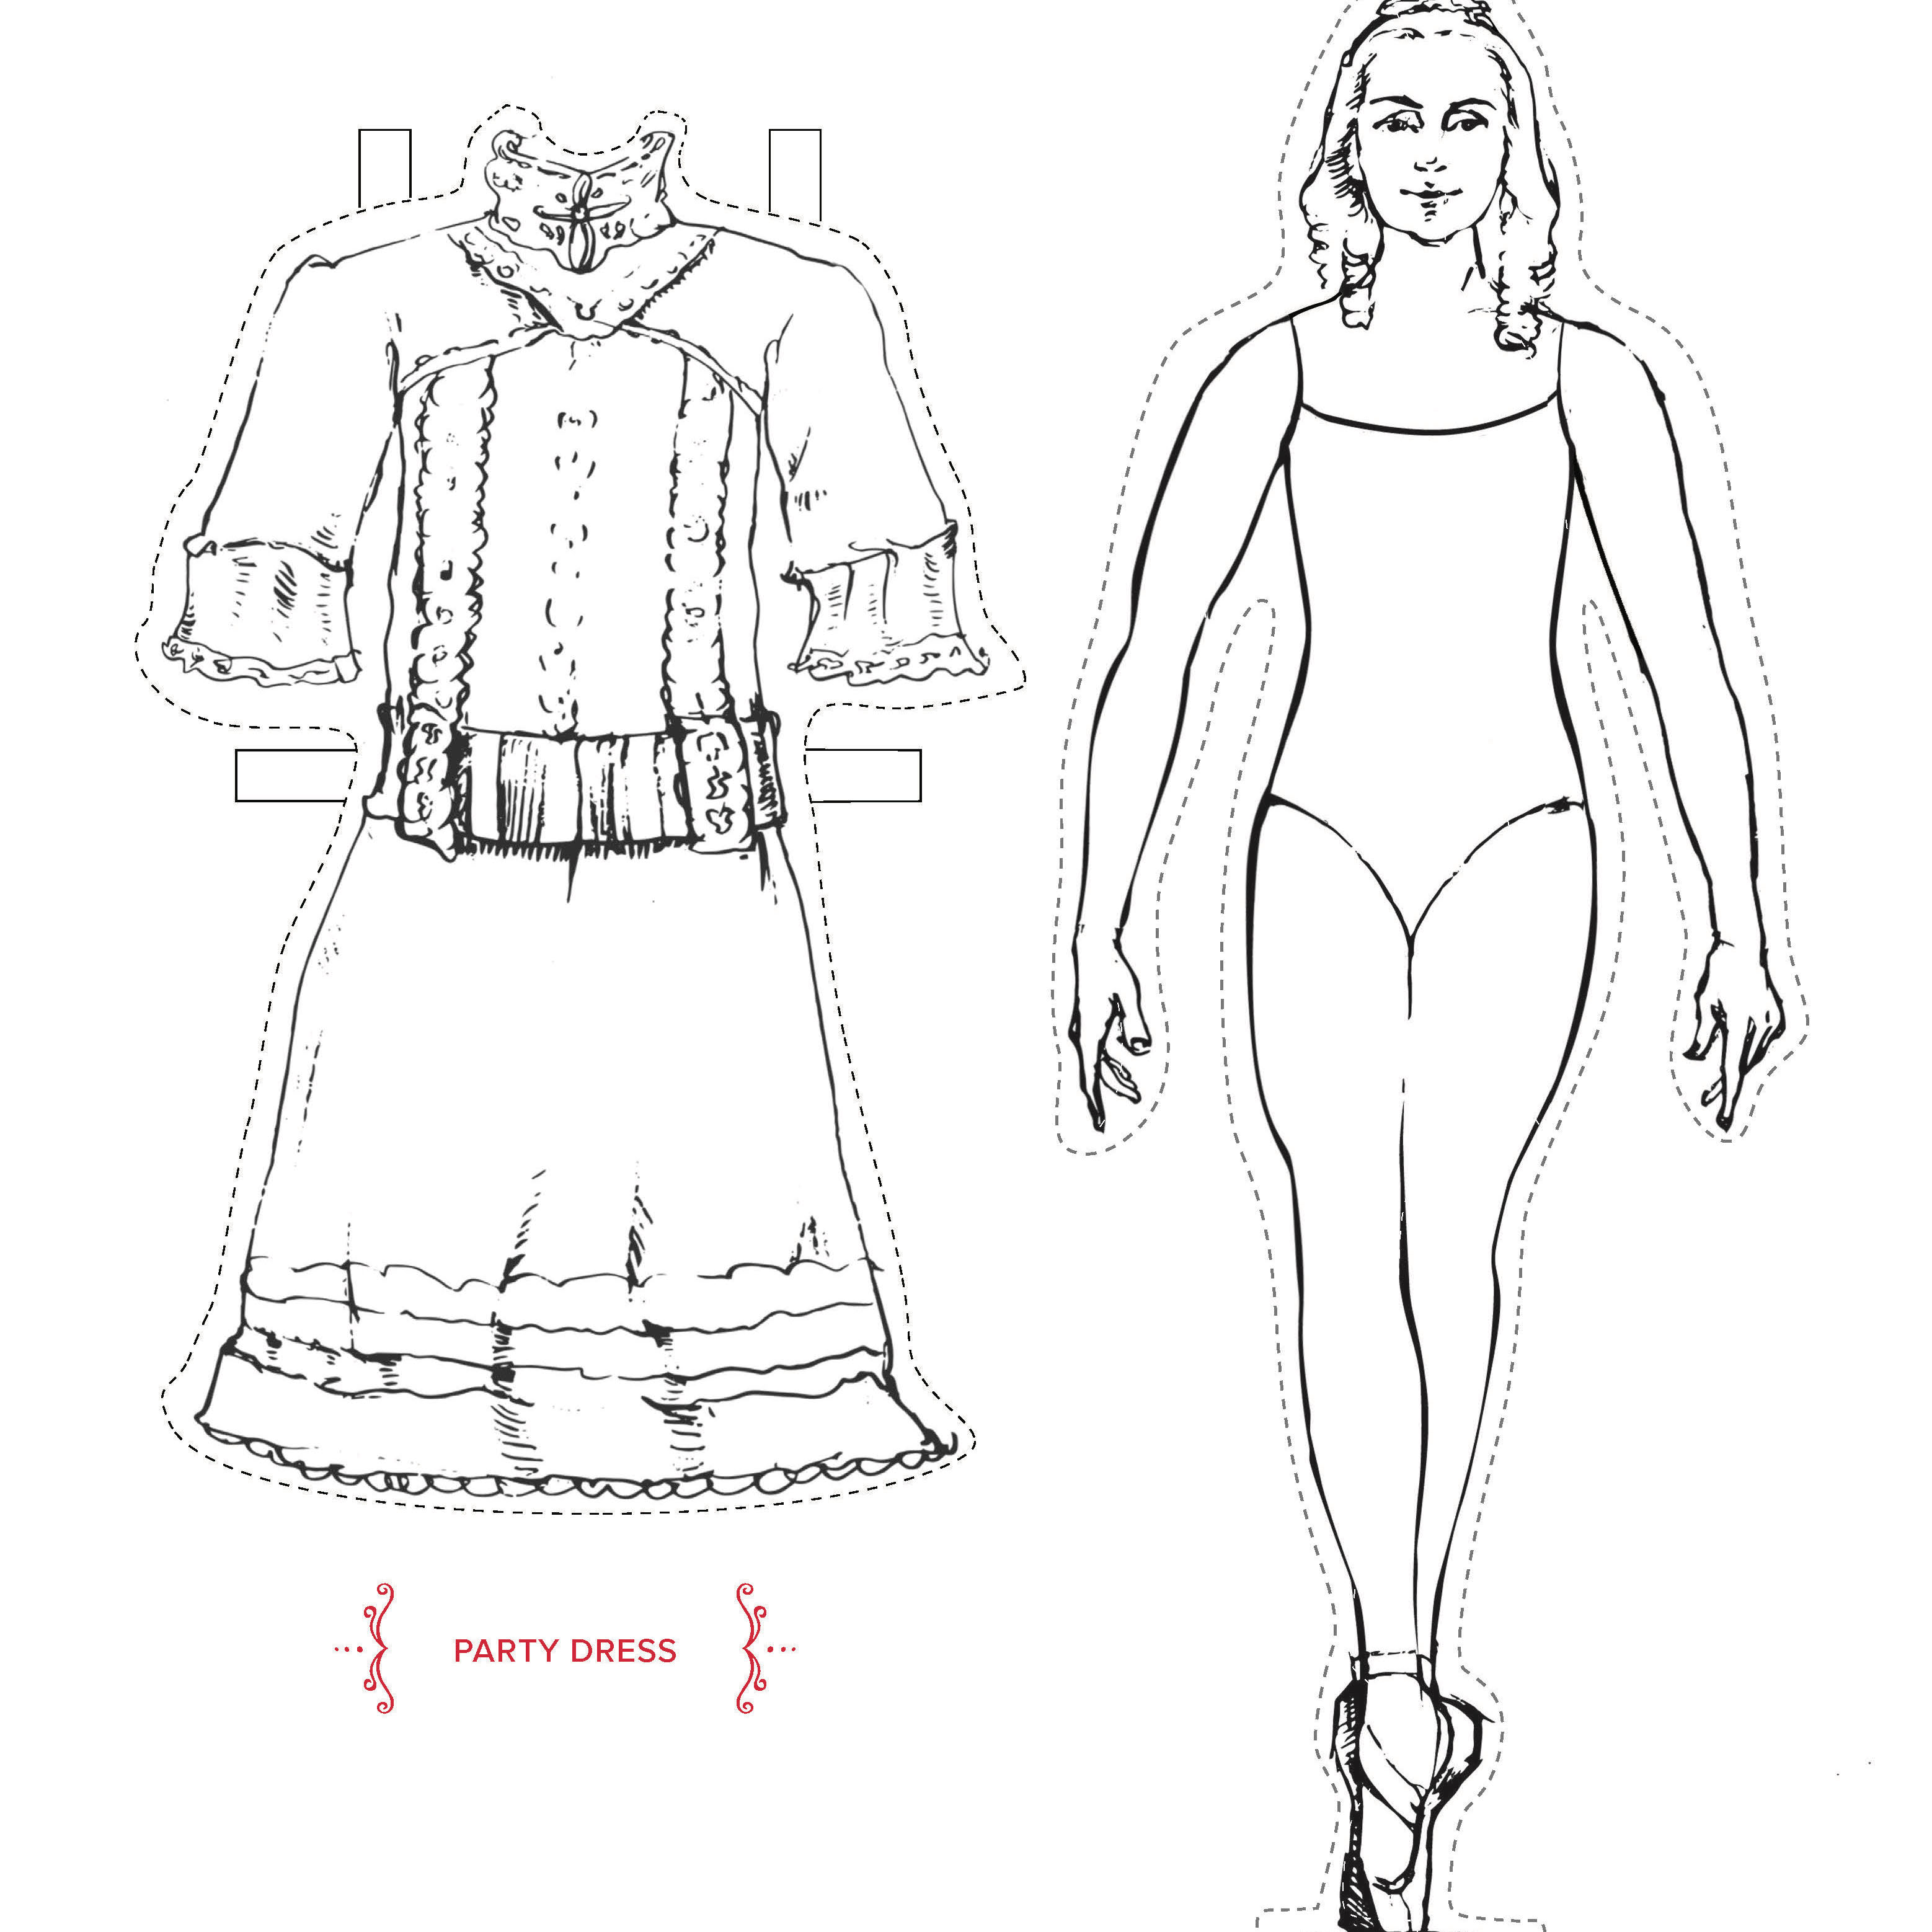 Paper doll for San Francisco Ballet's Nutcracker. Costume design by Martin Pakledinaz. Sketch by Francis Zhou.